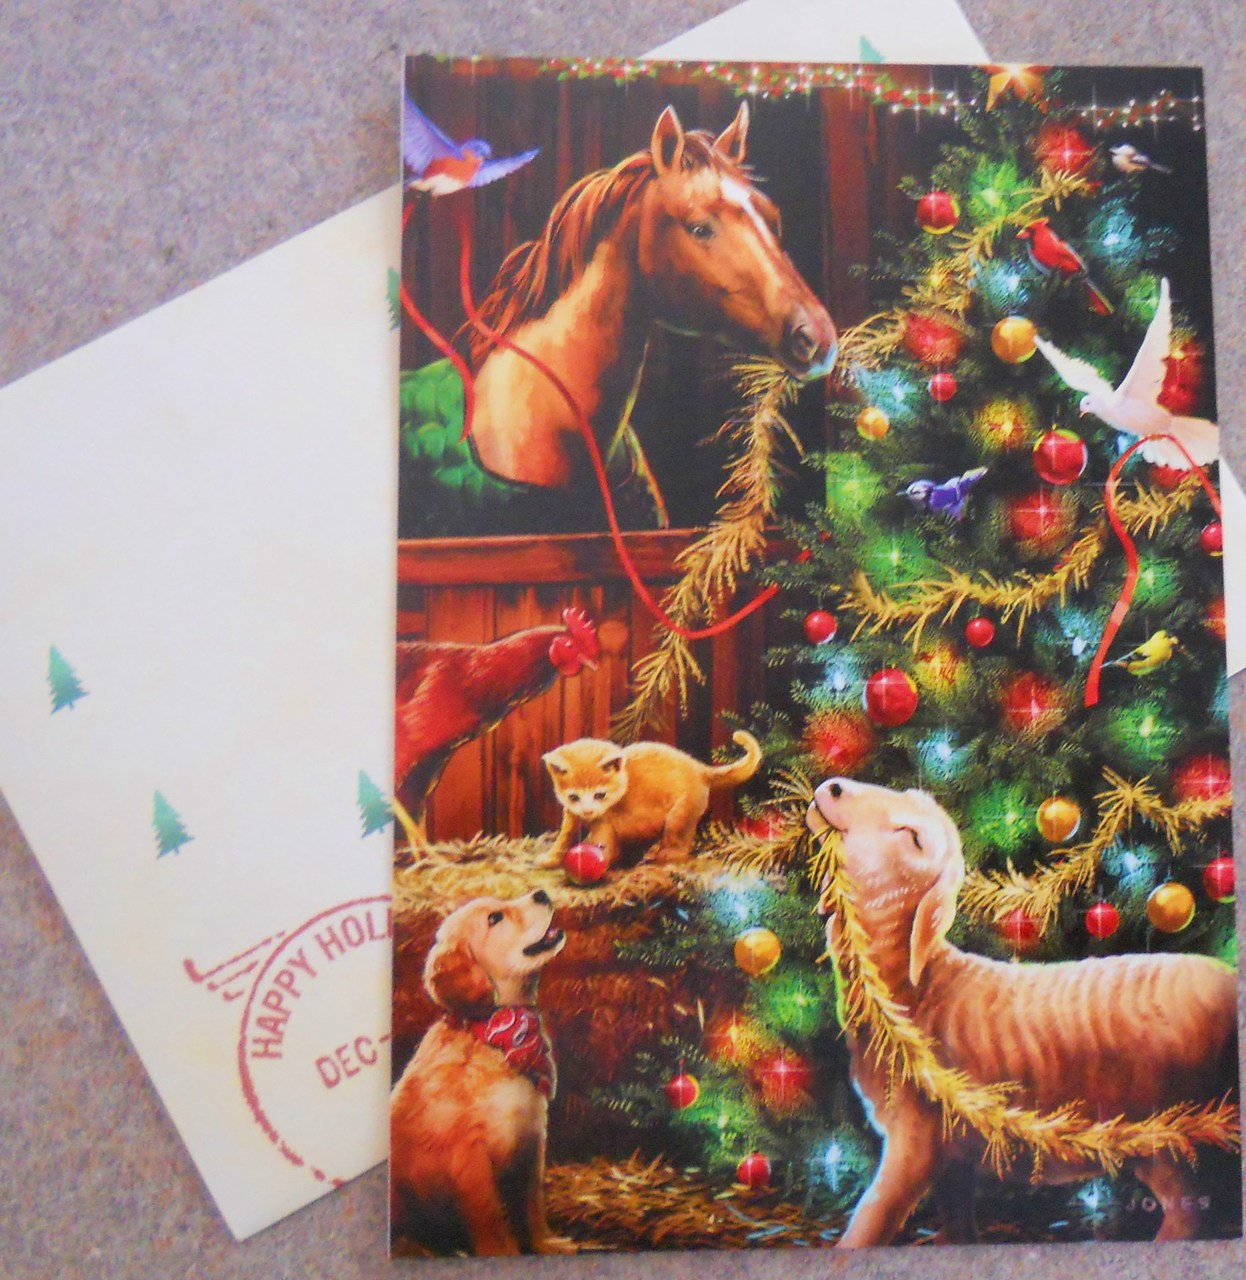 Leanin Tree Christmas Cards.Leanin Tree Christmas Cards 10 Box Animals In Barn Decorating A Christmas Tree